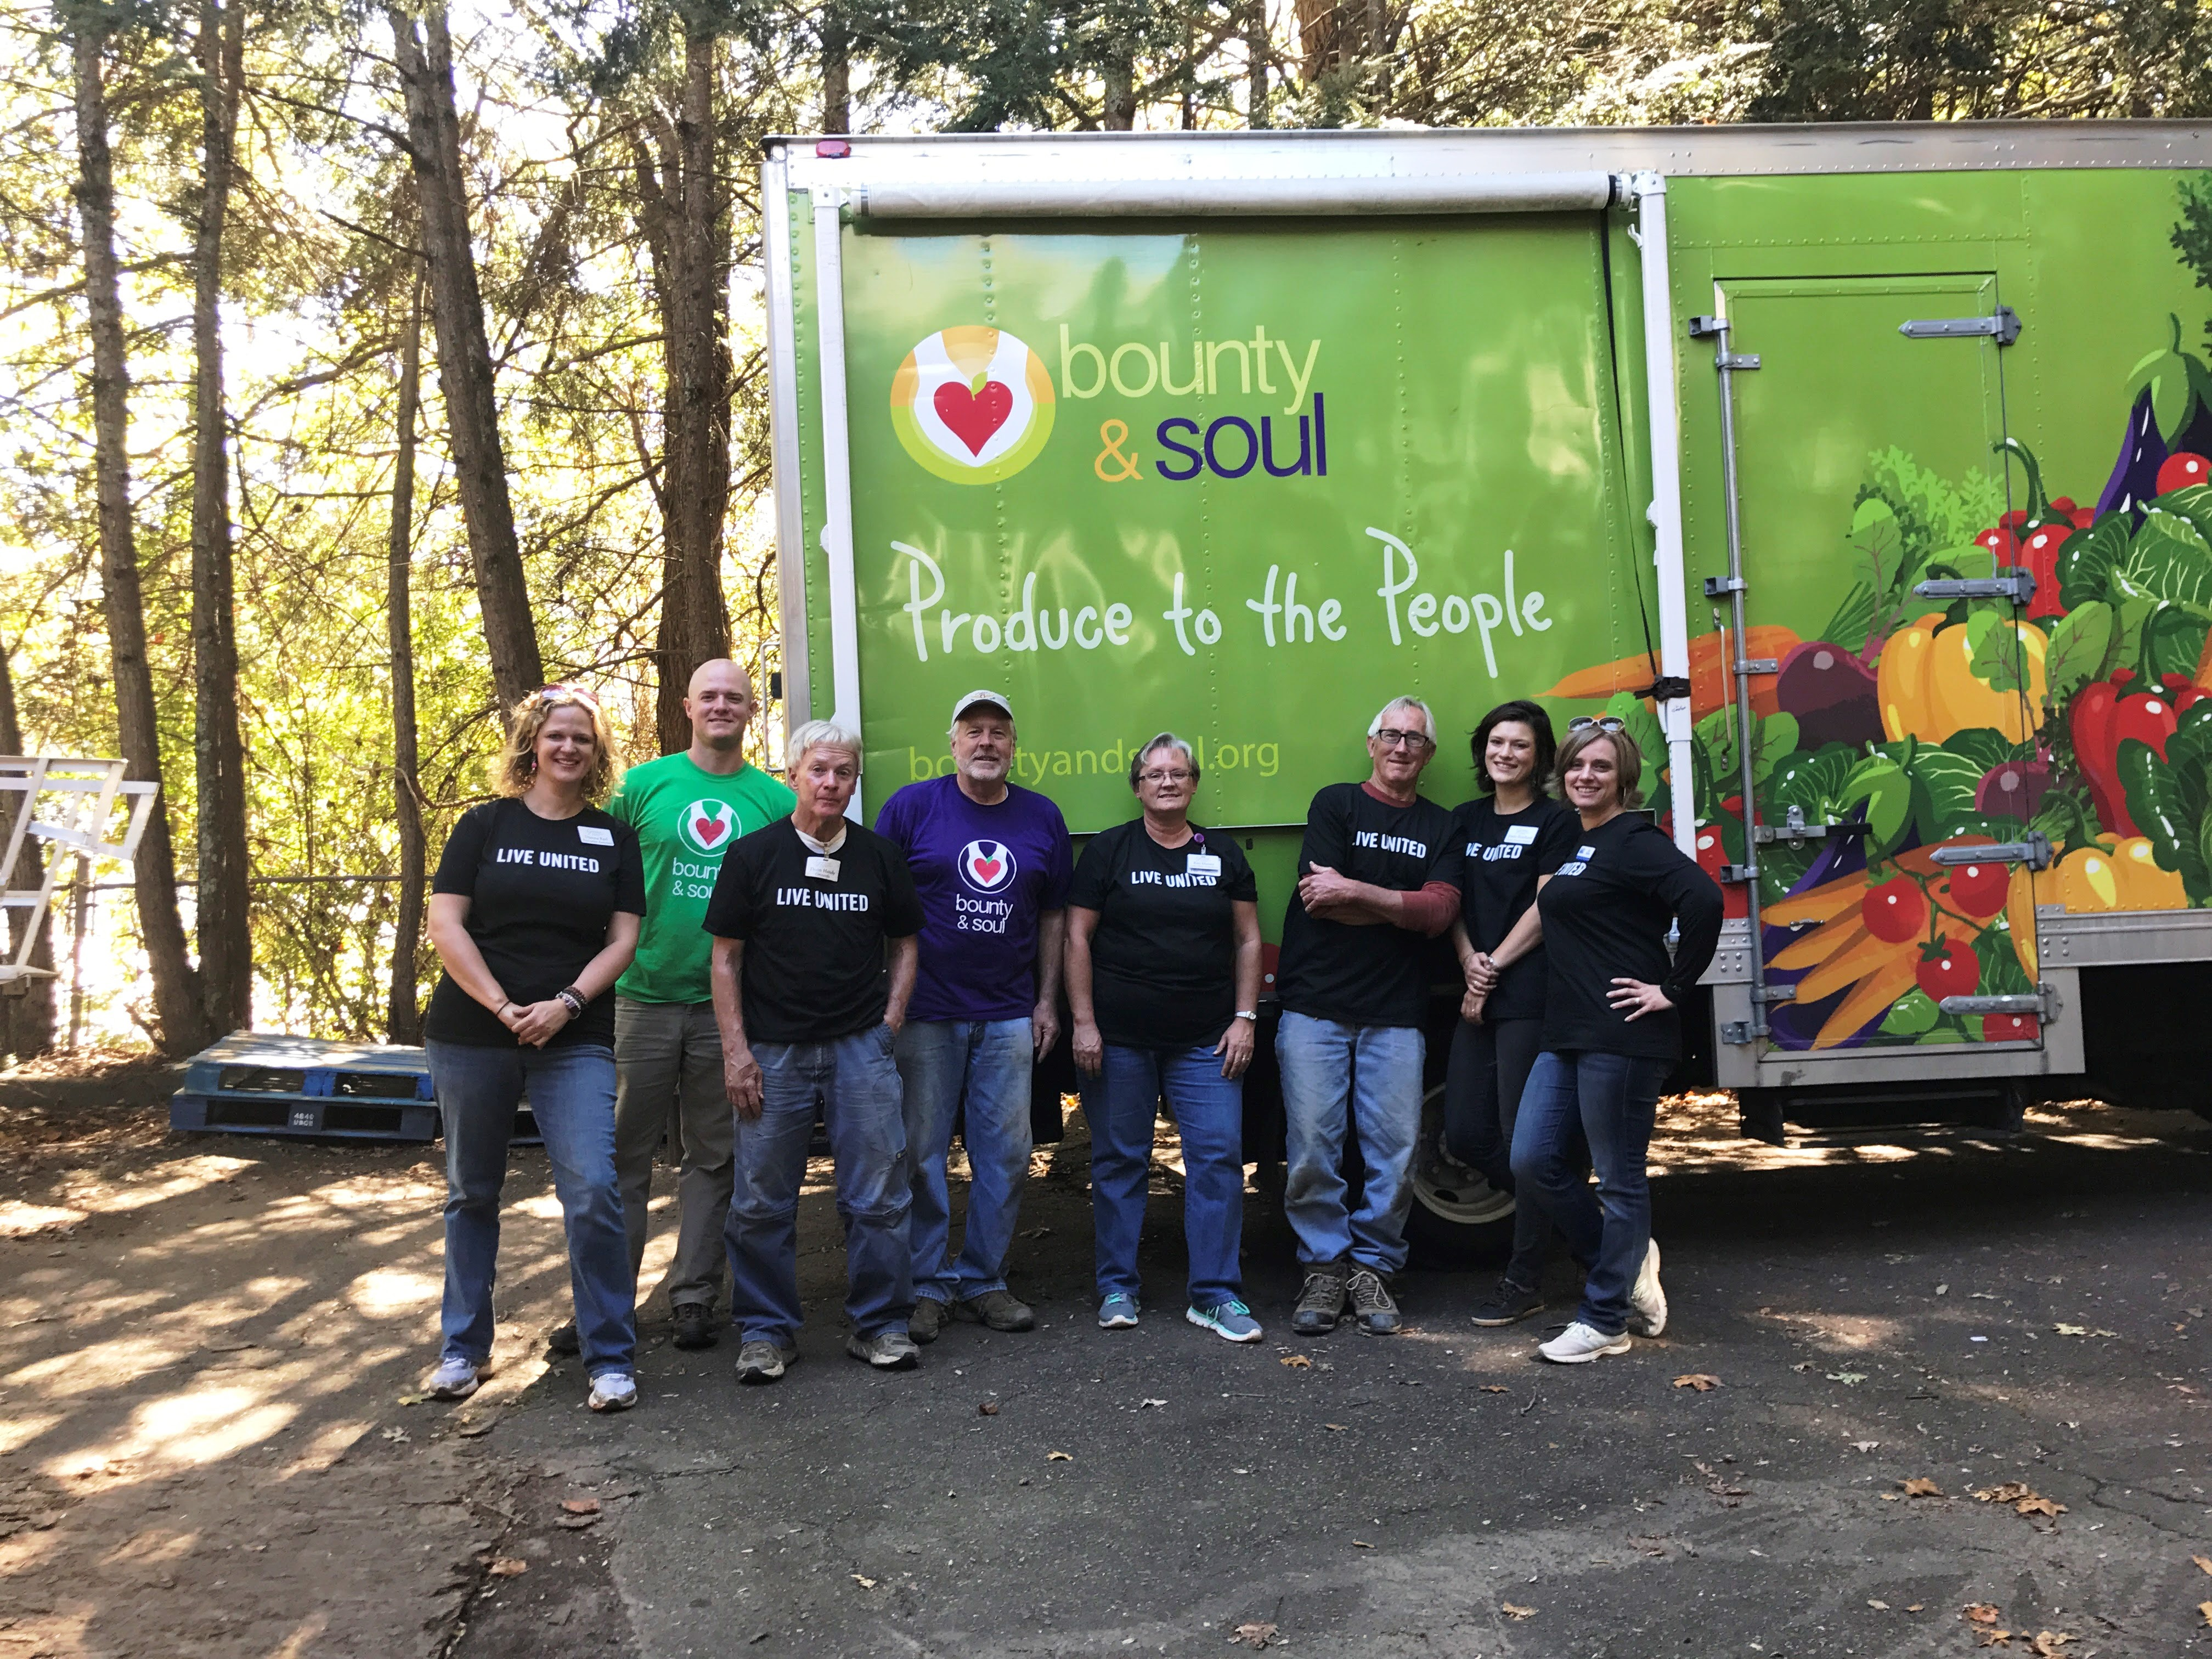 Givens Highland Farms helped Bounty & Soul with landscaping projects